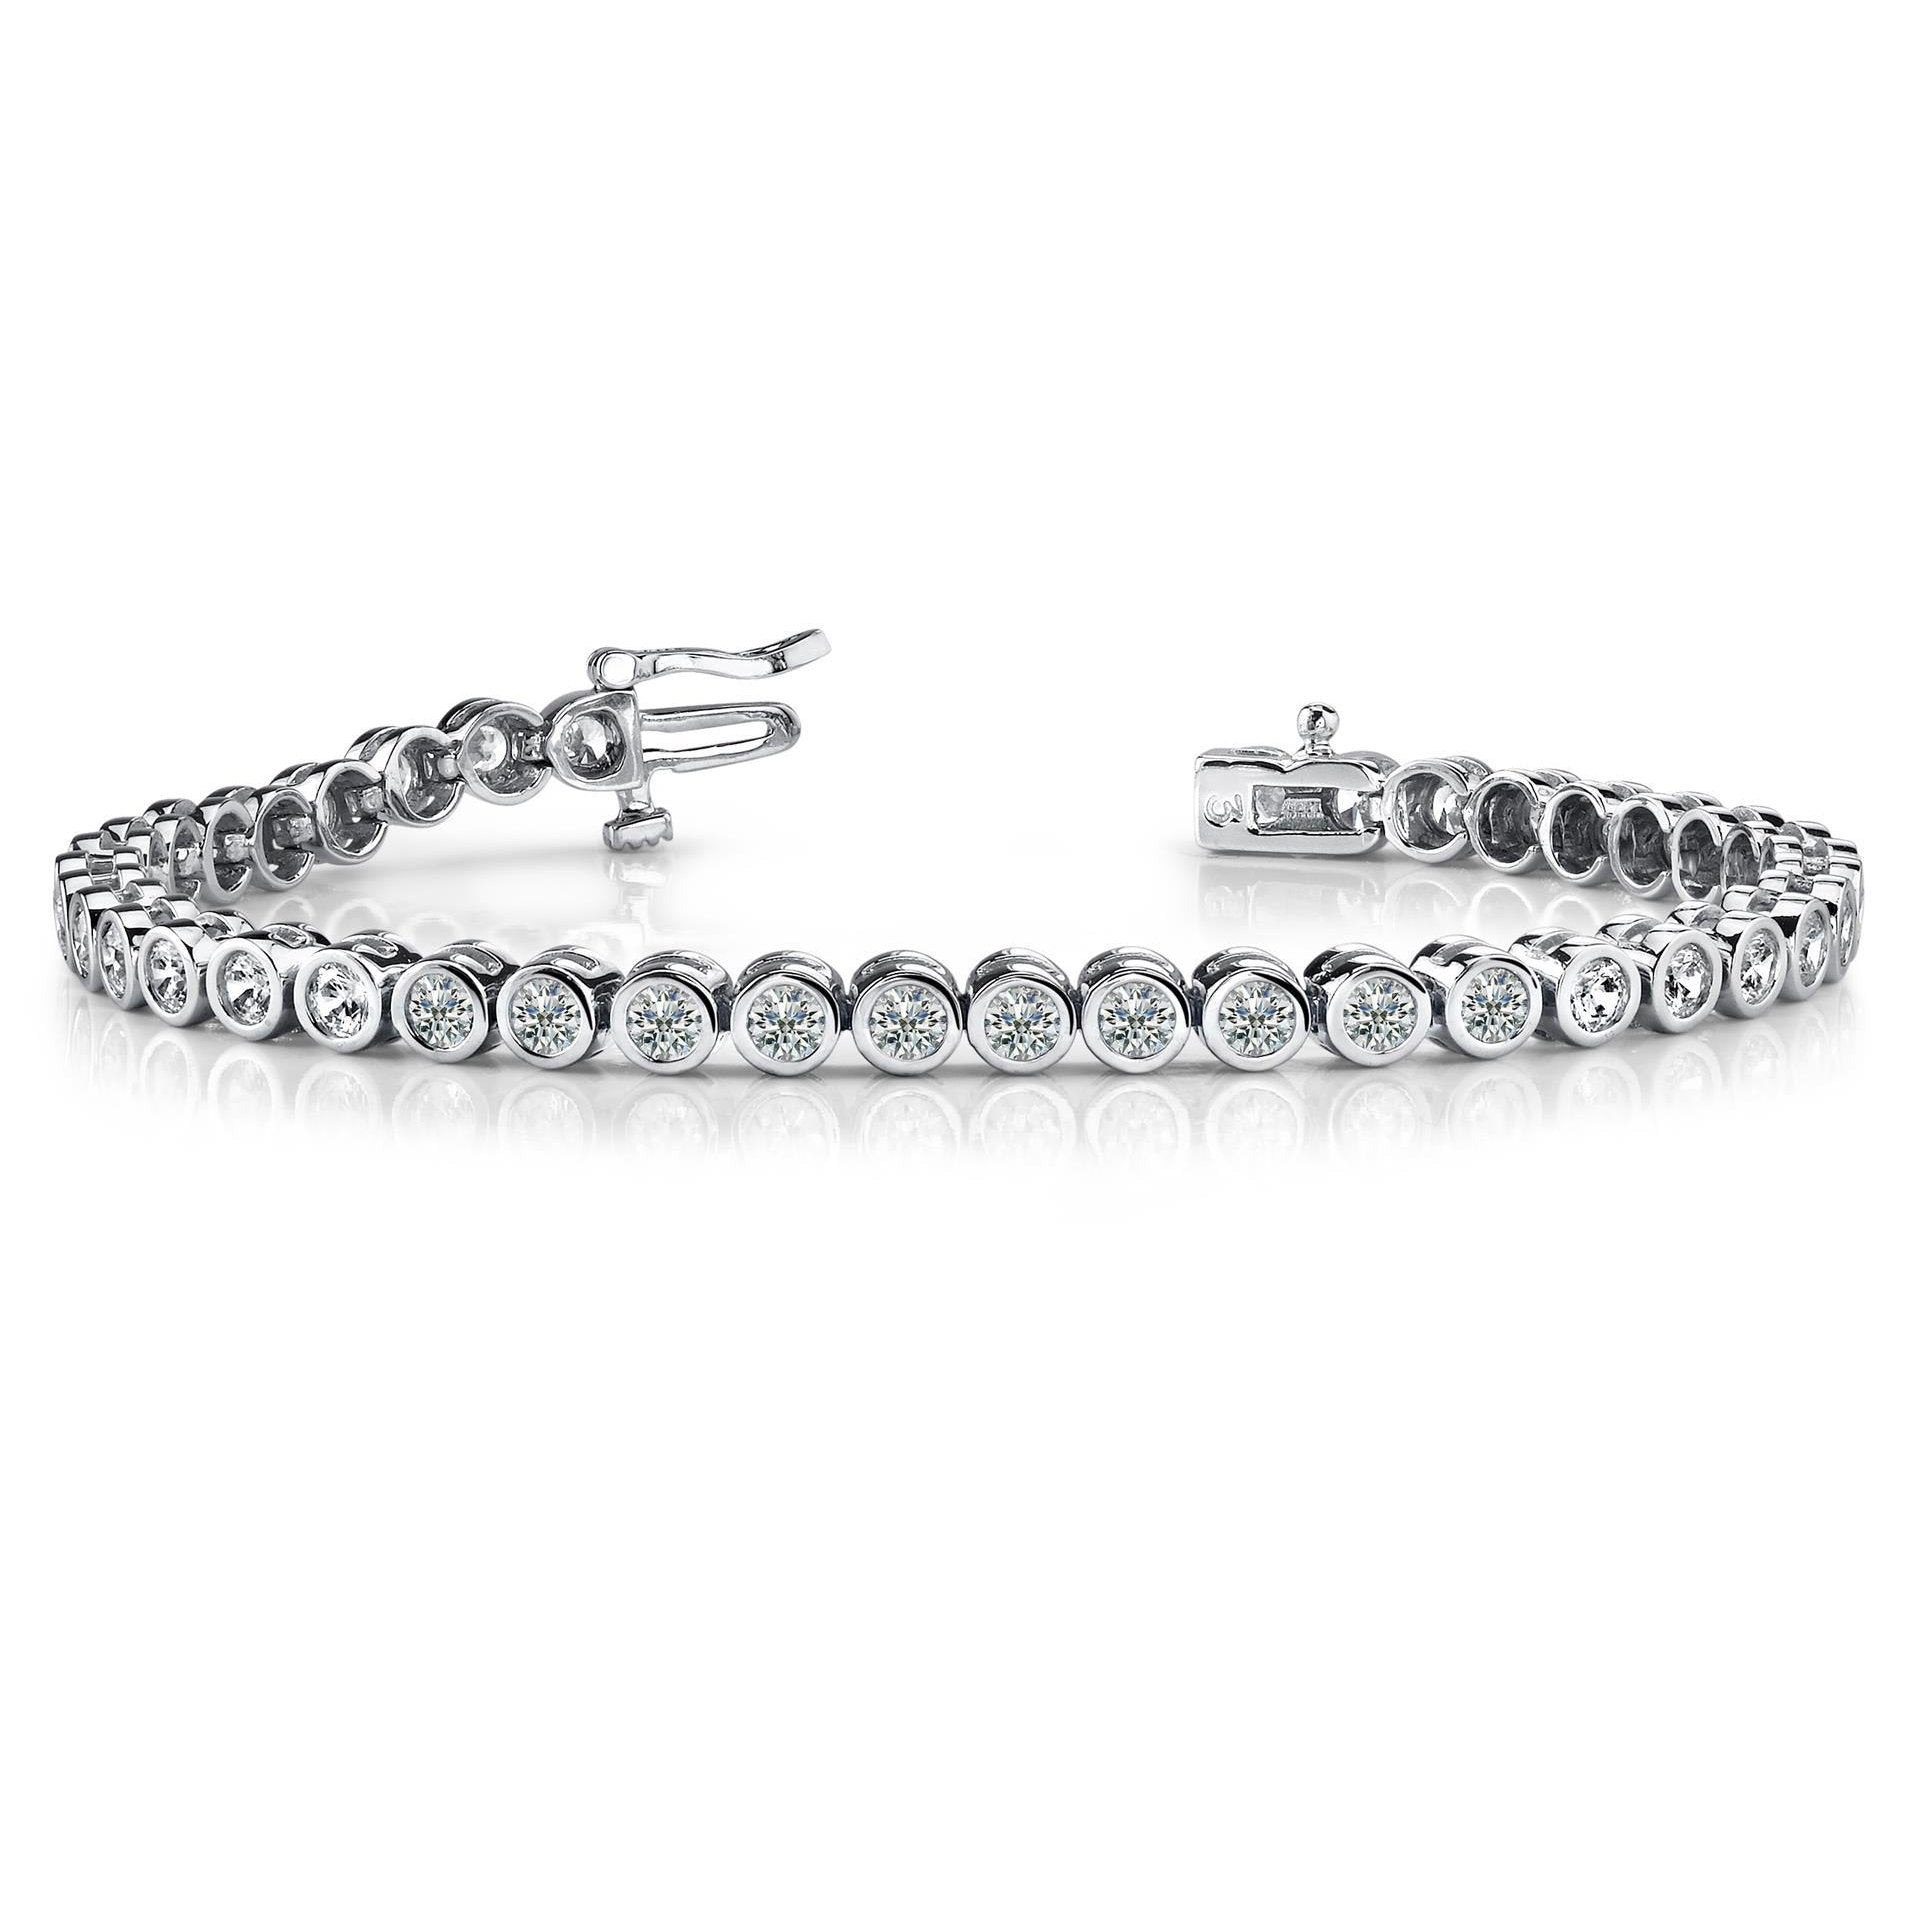 7.5 Ct Round Shape Diamond Tennis Bracelet 14K White Gold Tennis Bracelet